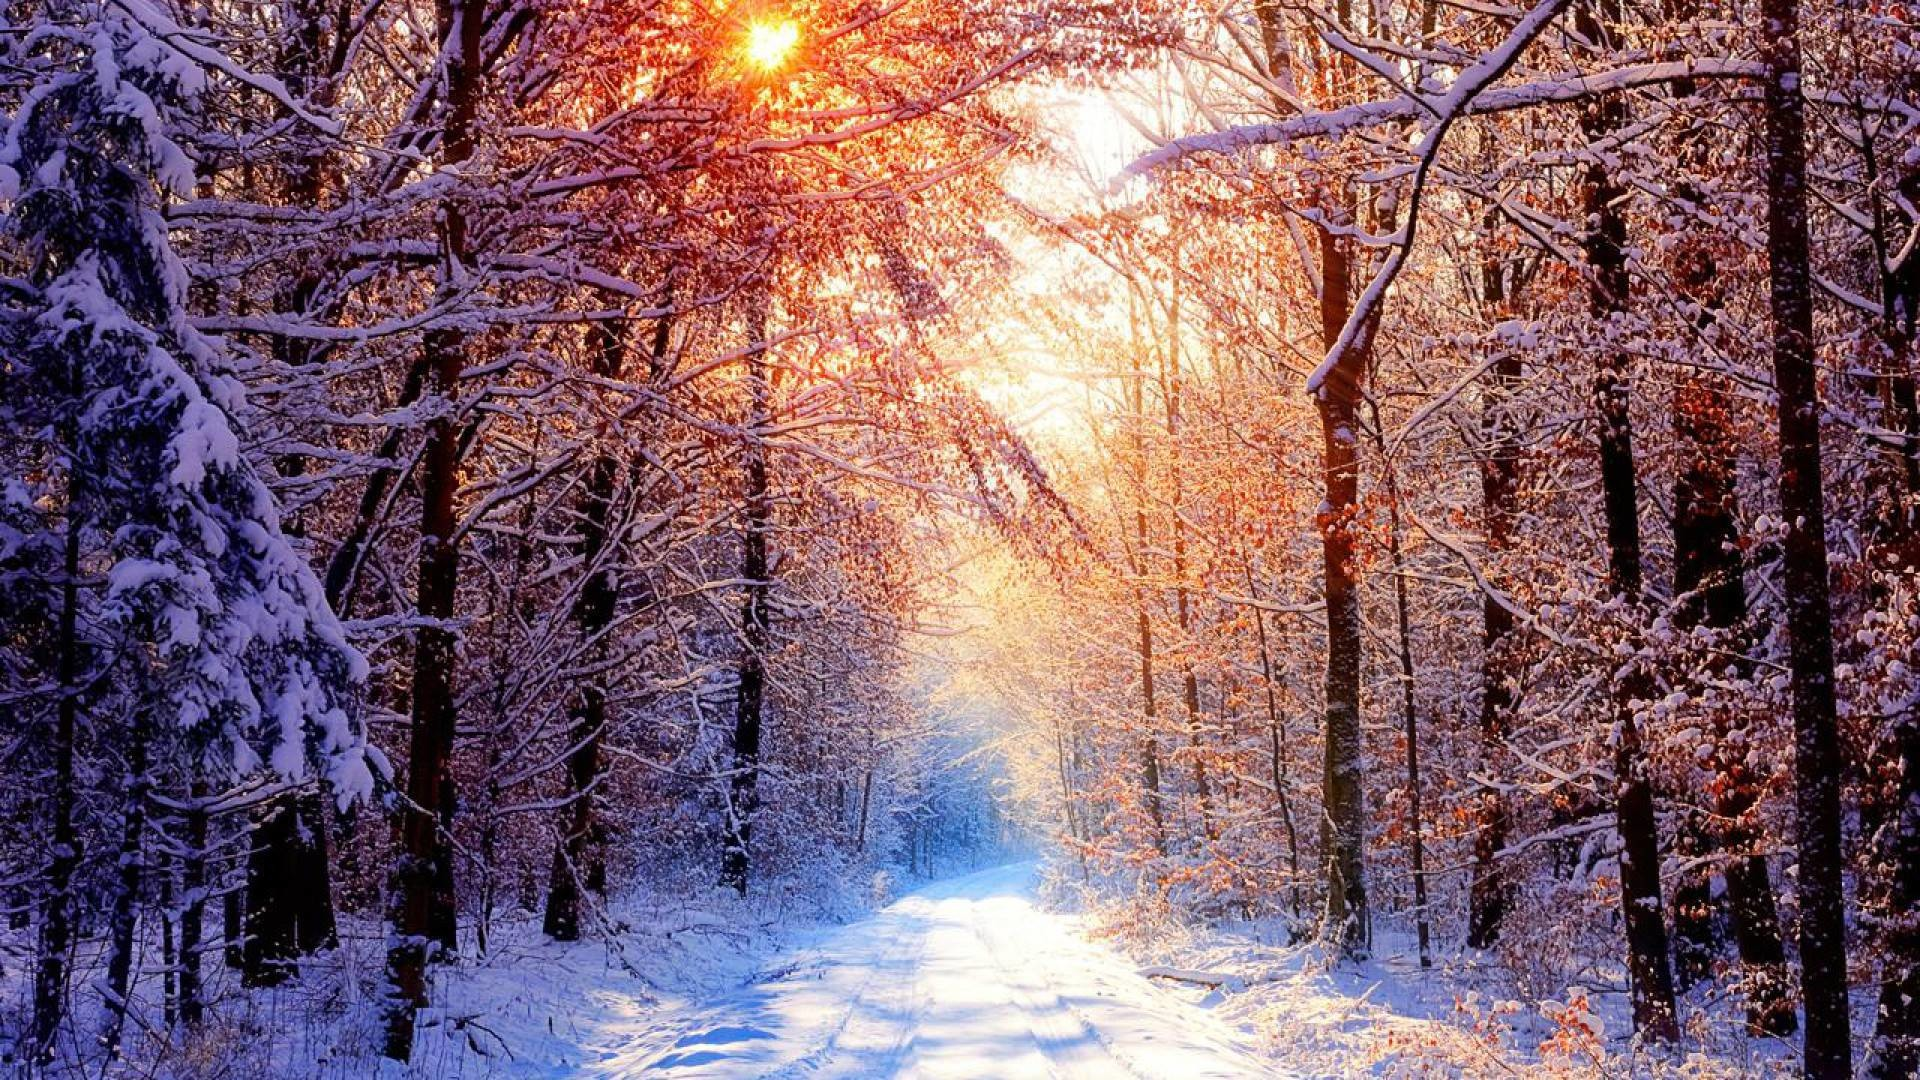 1920x1080, Like Or Share Creek Winter Forest Wallpapers - Snowy Forest Background - HD Wallpaper